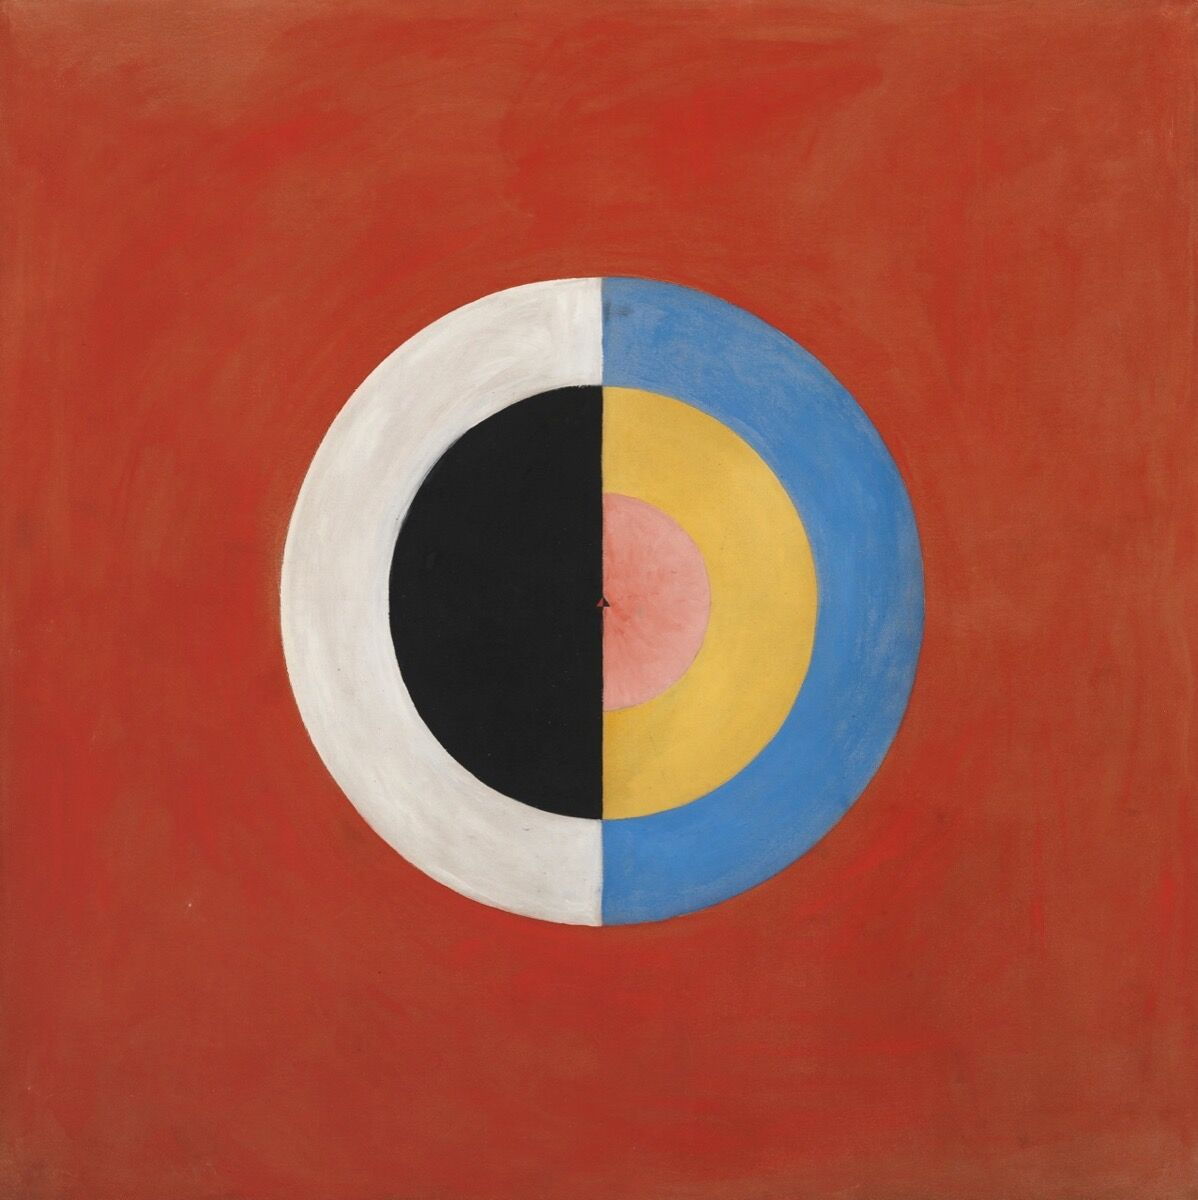 Hilma af Klint, Svanen (The Swan) No. 17, Group IX/SUW, The SUW/UW Series, 1914-1915. Image via Wikimedia Commons.